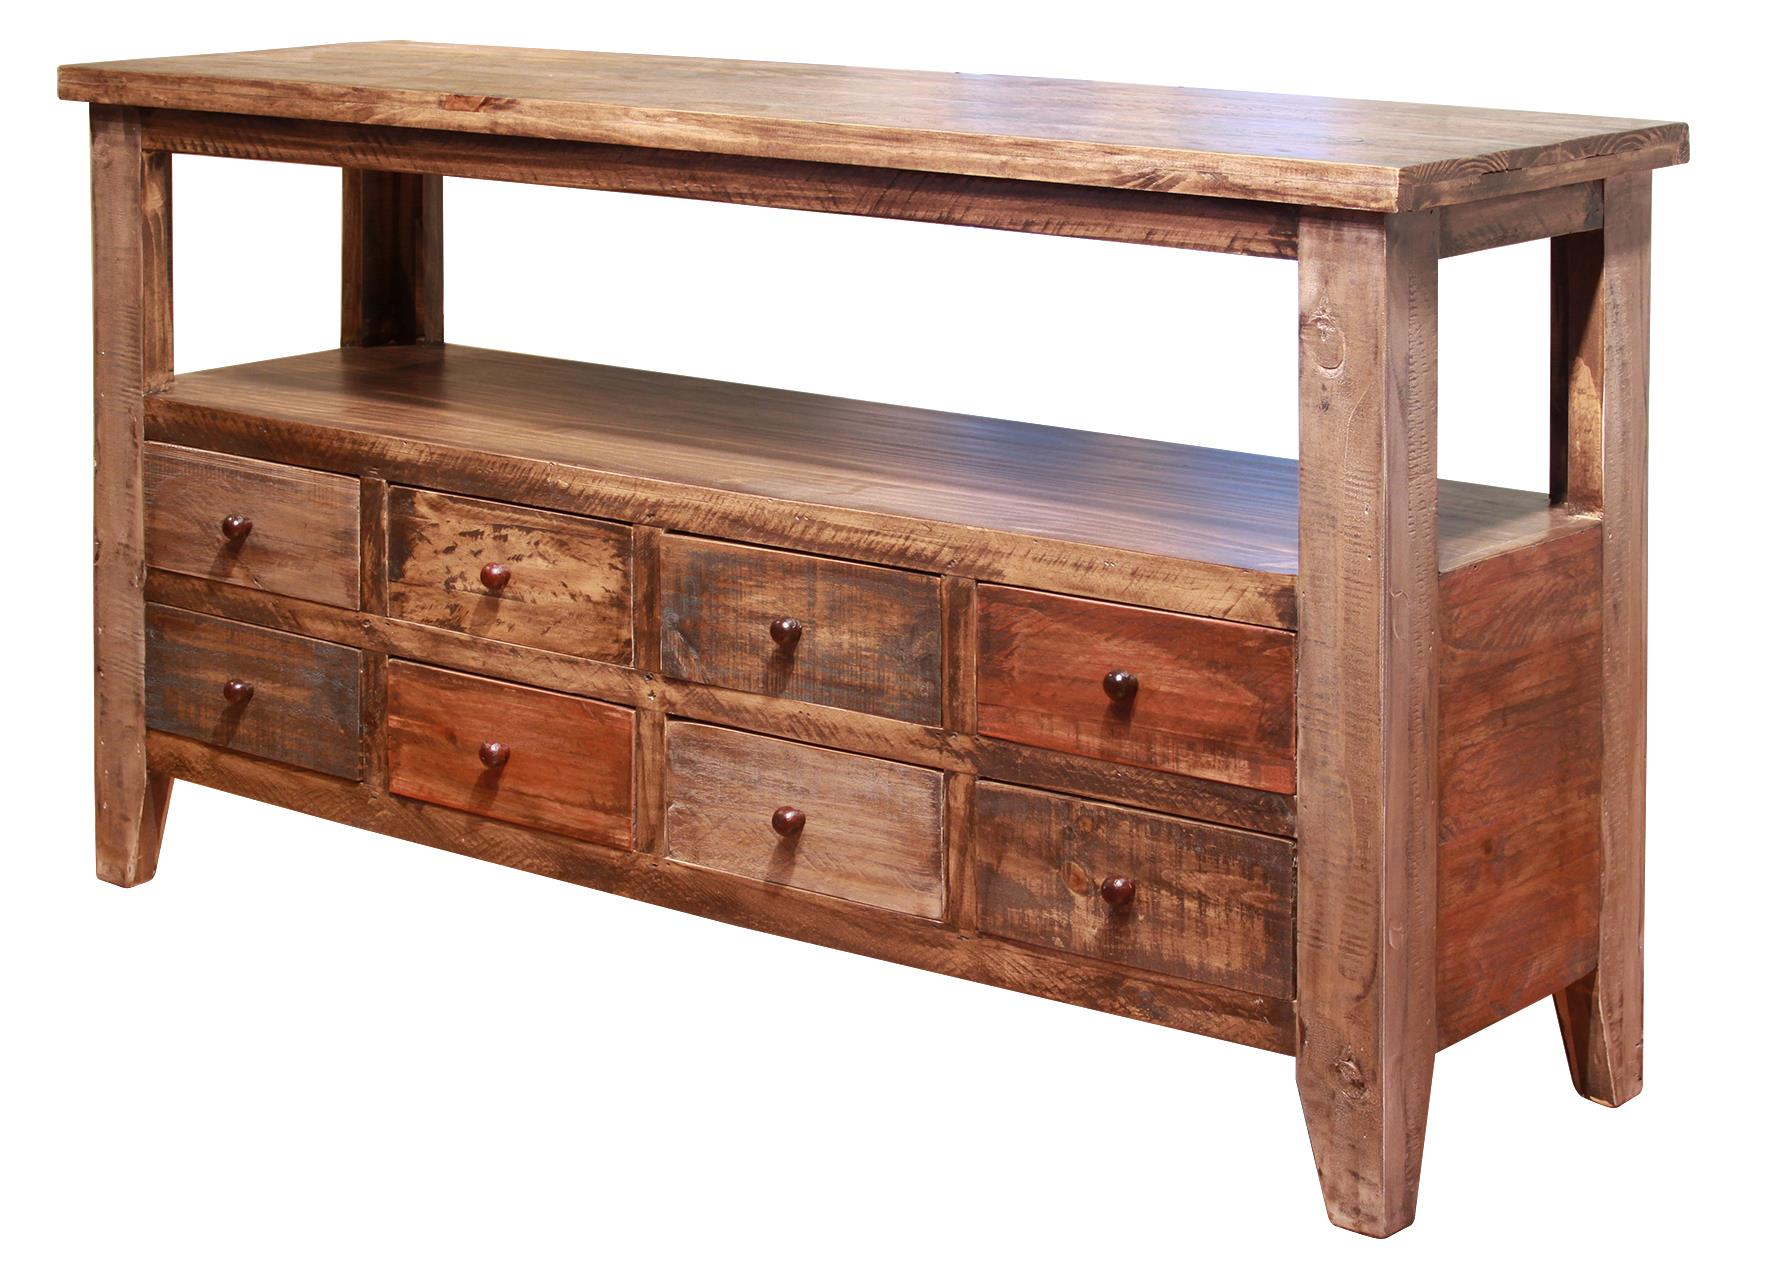 Vfm Signature Antique Sofa Table With 8 Drawers Virginia Furniture Market Sofa Tables Consoles